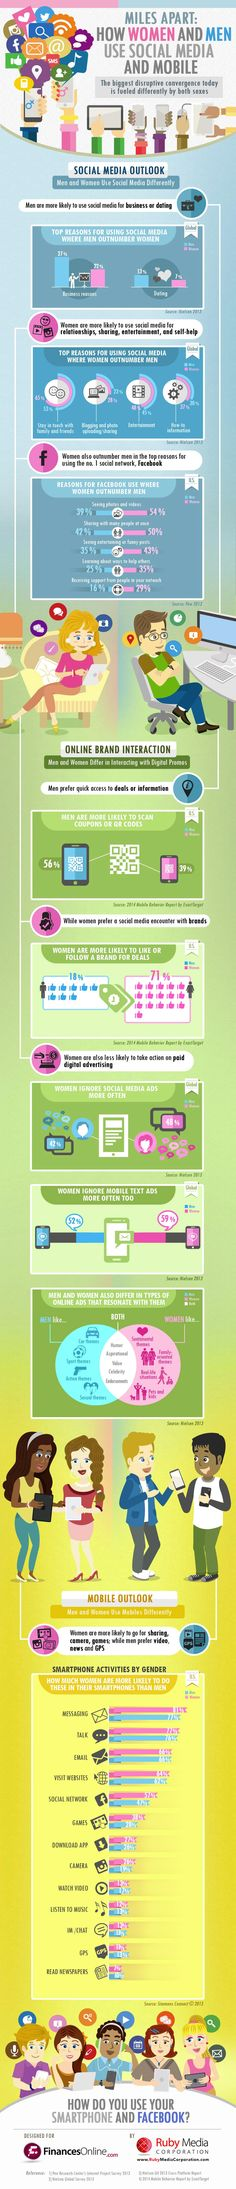 How Men and Women Use Mobile and #SocialMedia Differently #Infographic | via #BornToBeSocial - Pinterest Marketing